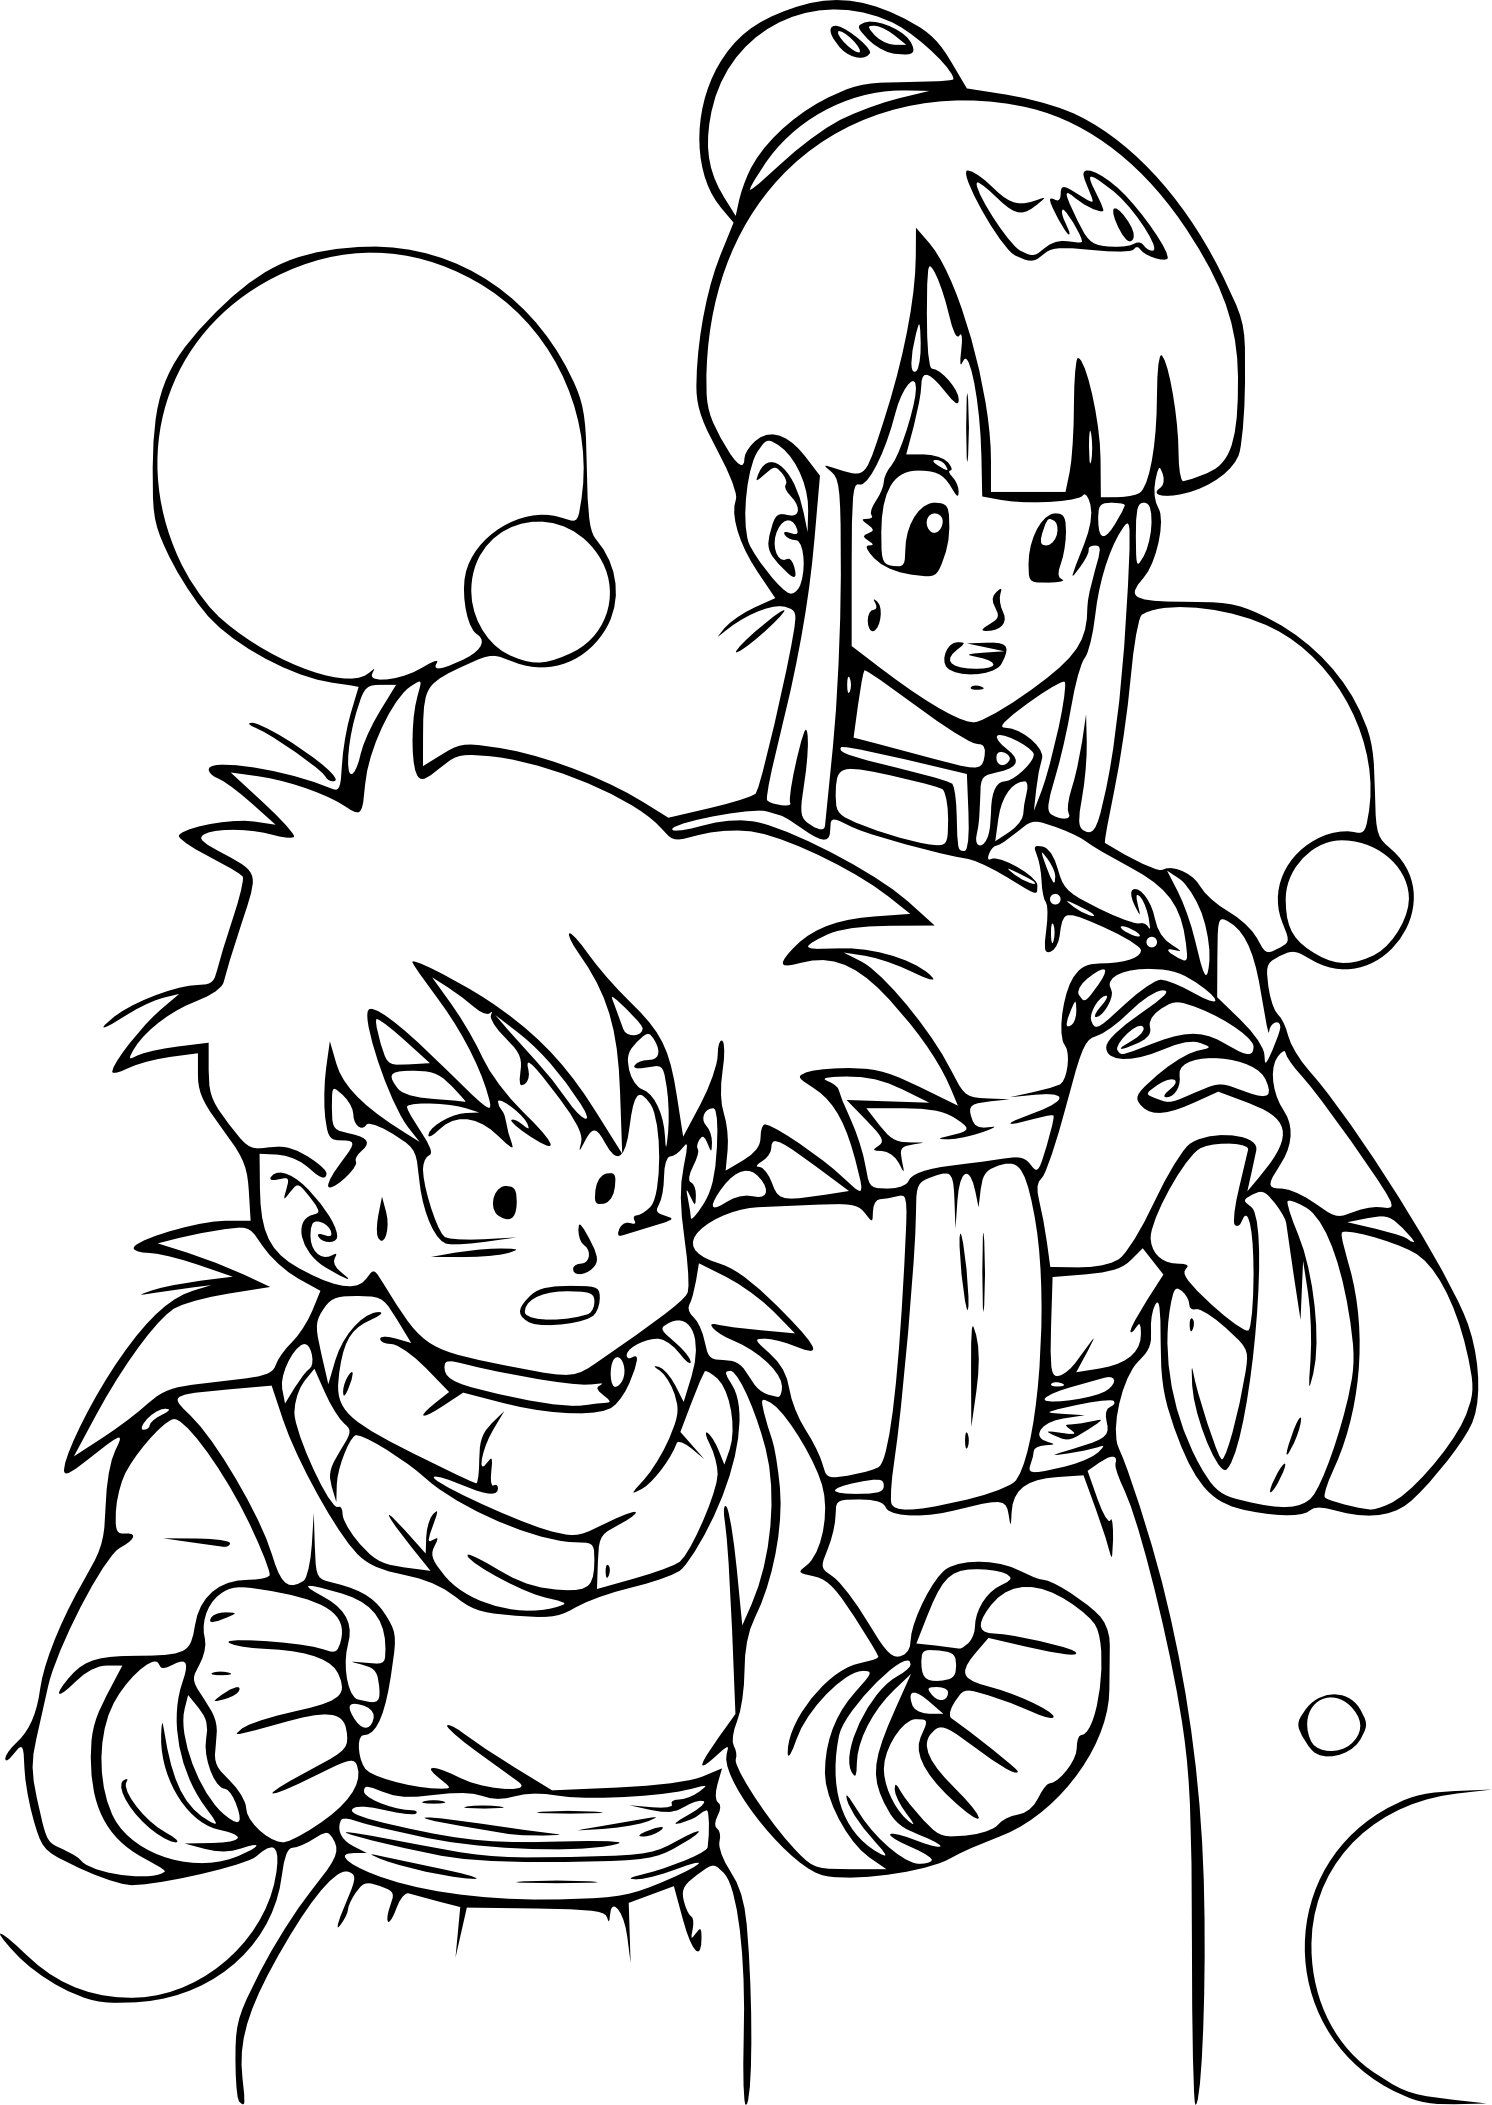 Coloriage sangohan et chichi imprimer - Dessin de dragon ball ...